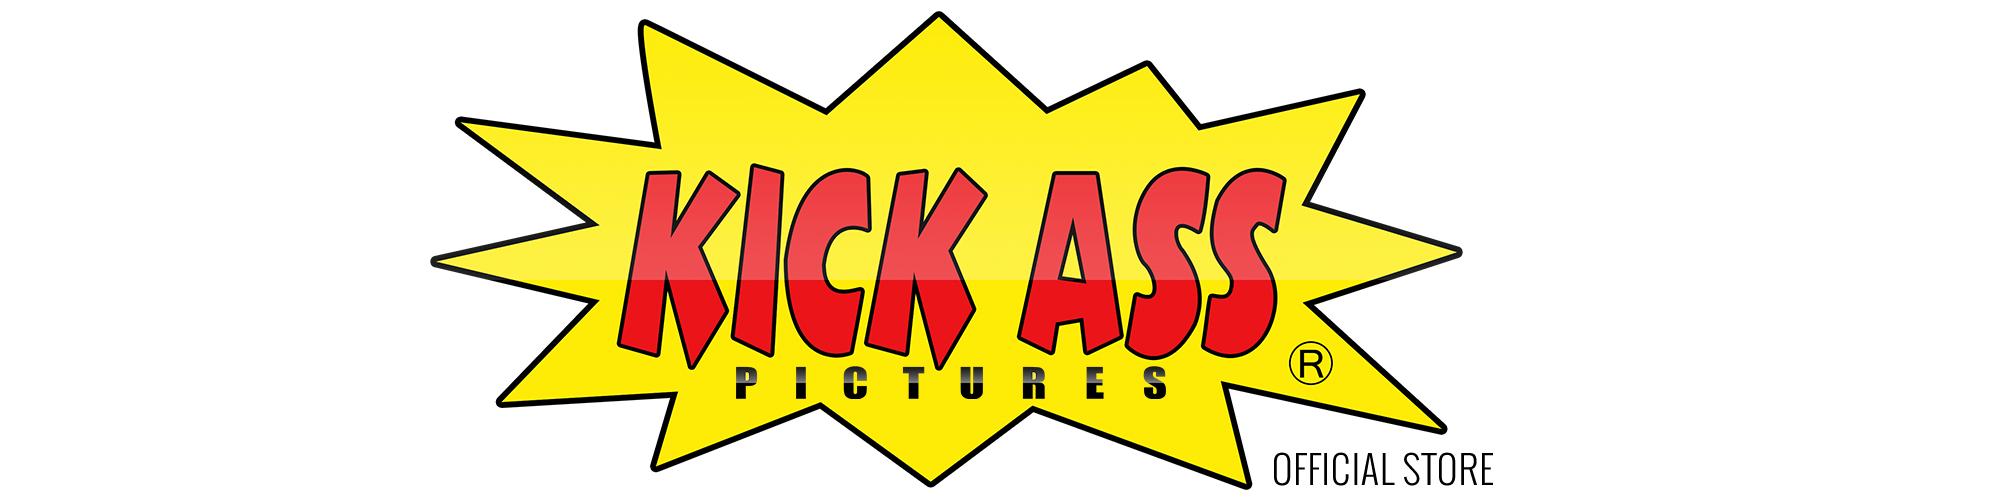 Kick Ass  DVD, sex toy and Streaming Porn Video on Demand